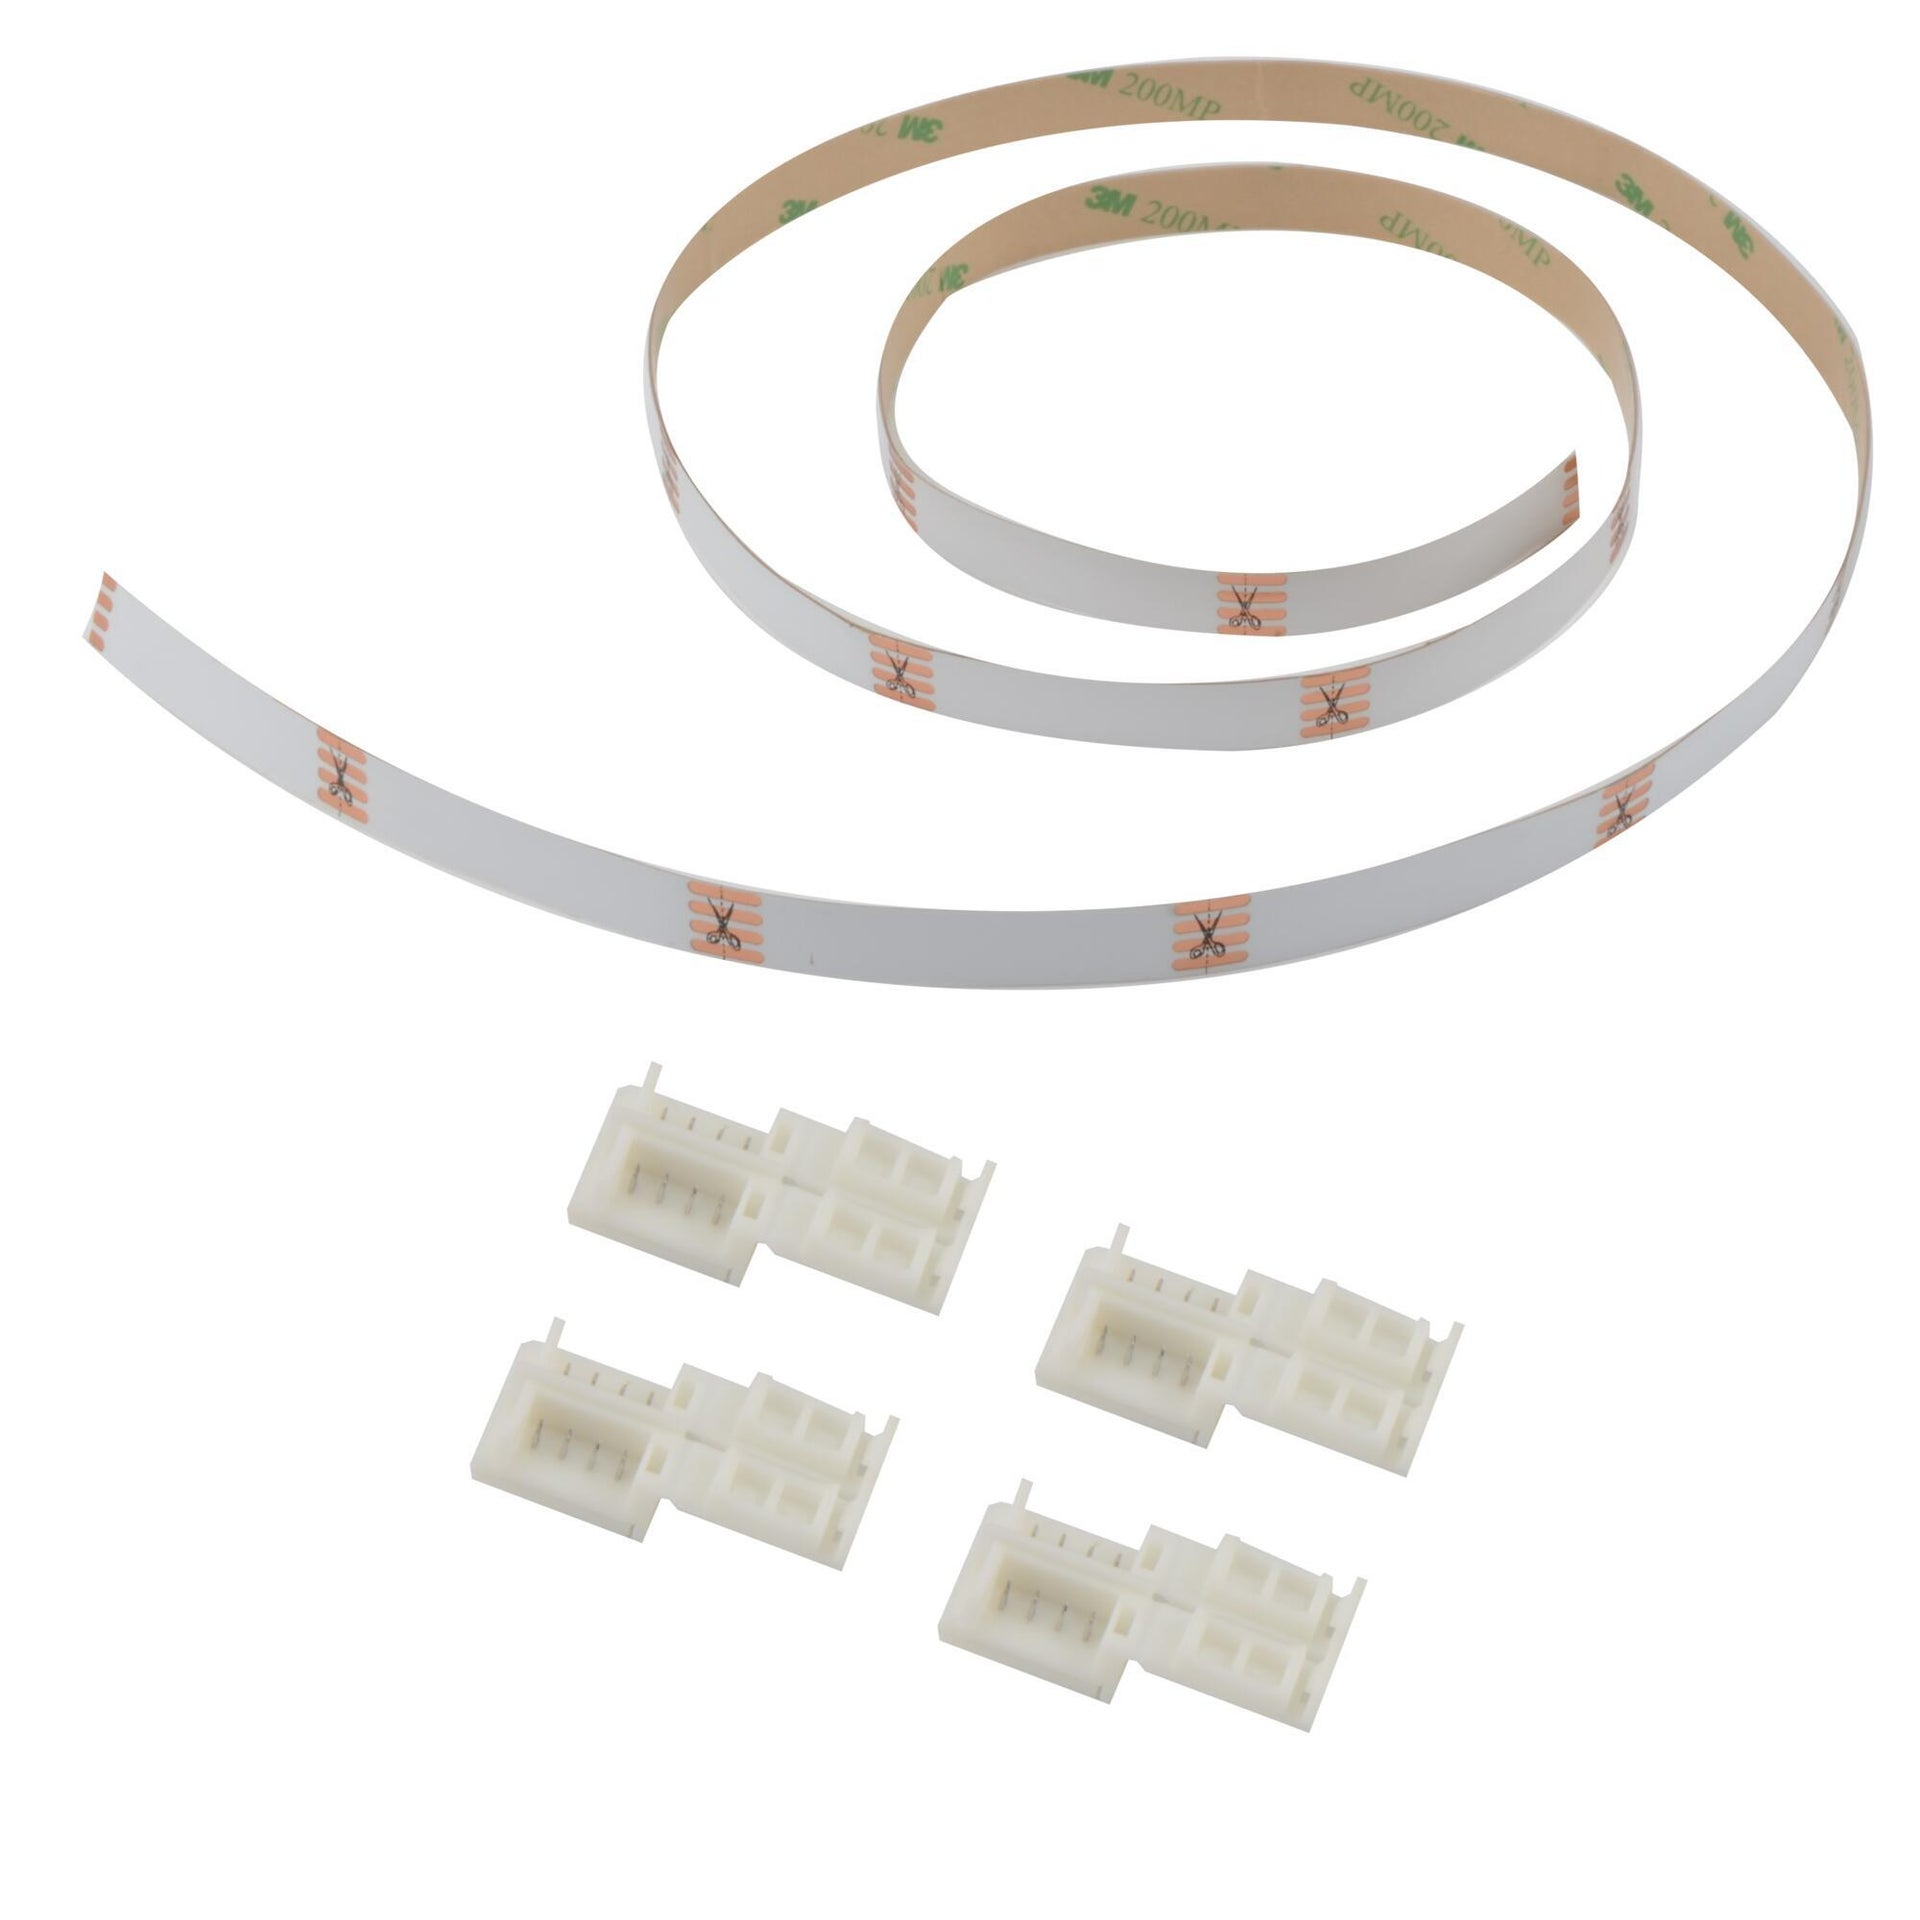 Connettore led strip, bianco, 1 m - 2